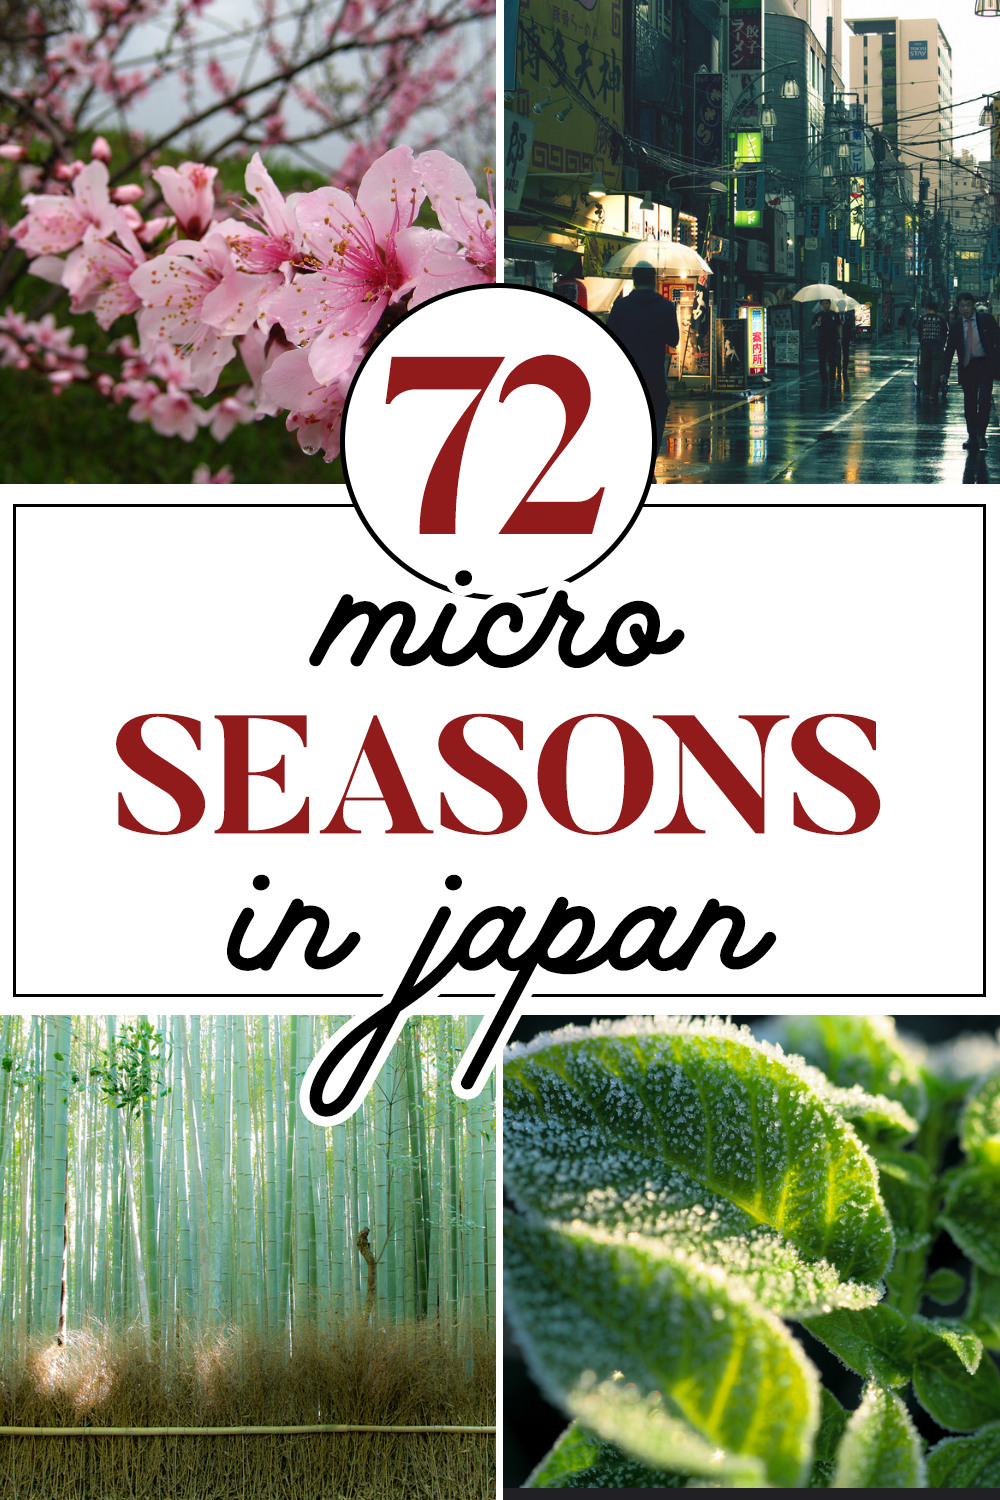 Japan's 72 Microseasons